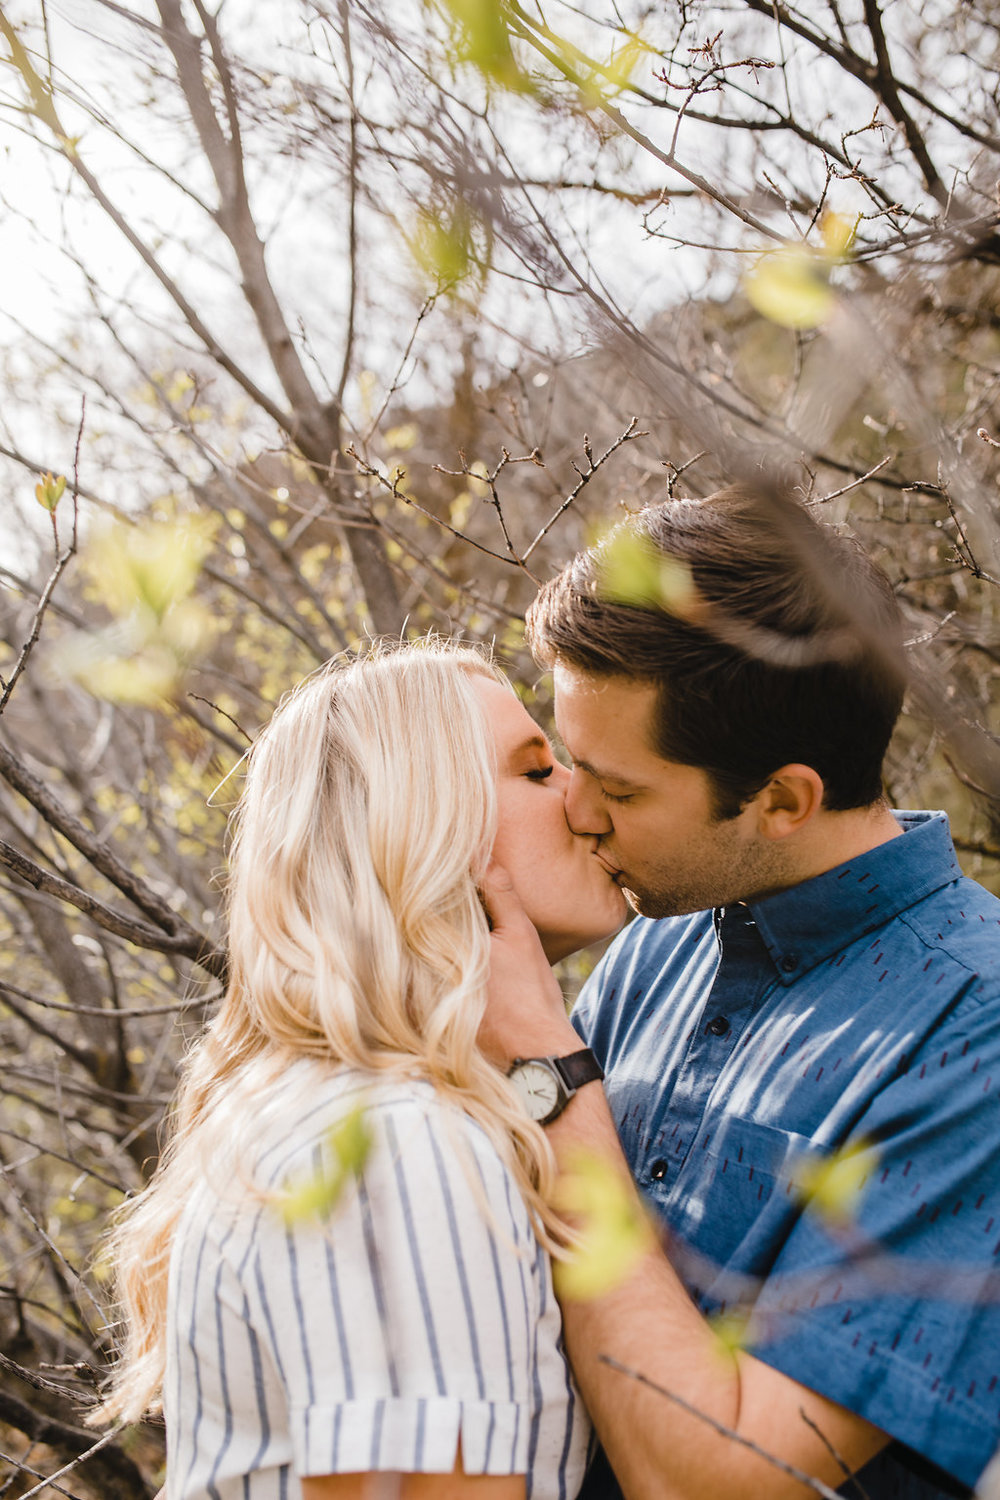 cache valley ut logan green canyon adventurous outdoor engagement photographer calli richards